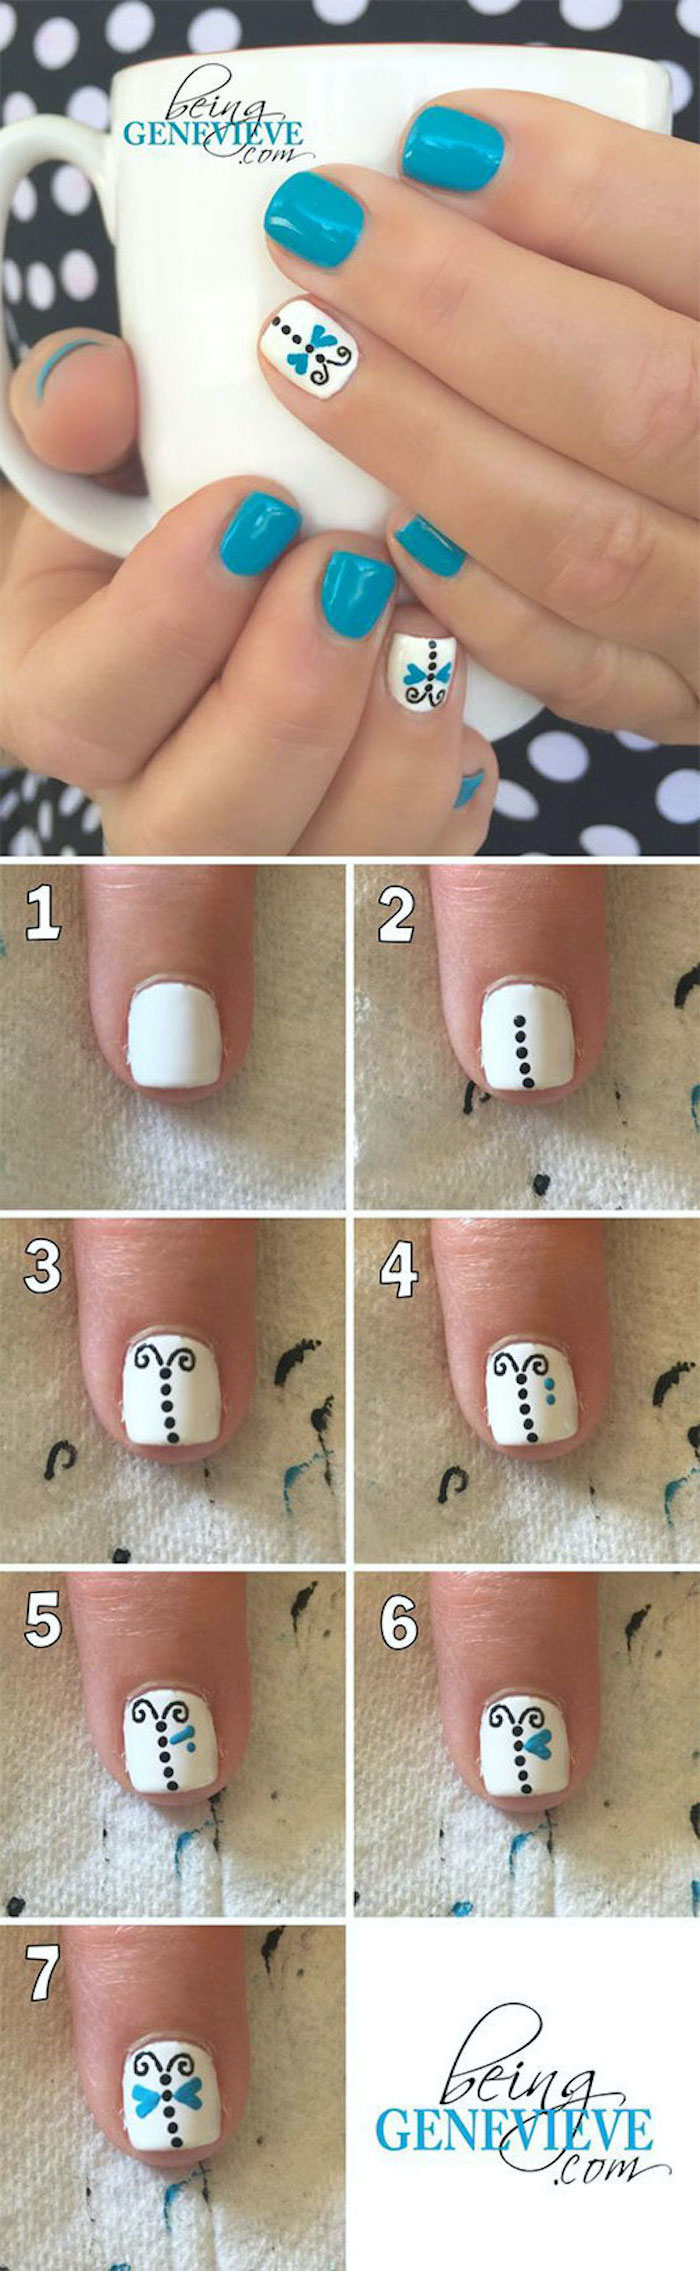 blue and white nail polish, butterflies decorations, vacation nails, step by step diy tutorial